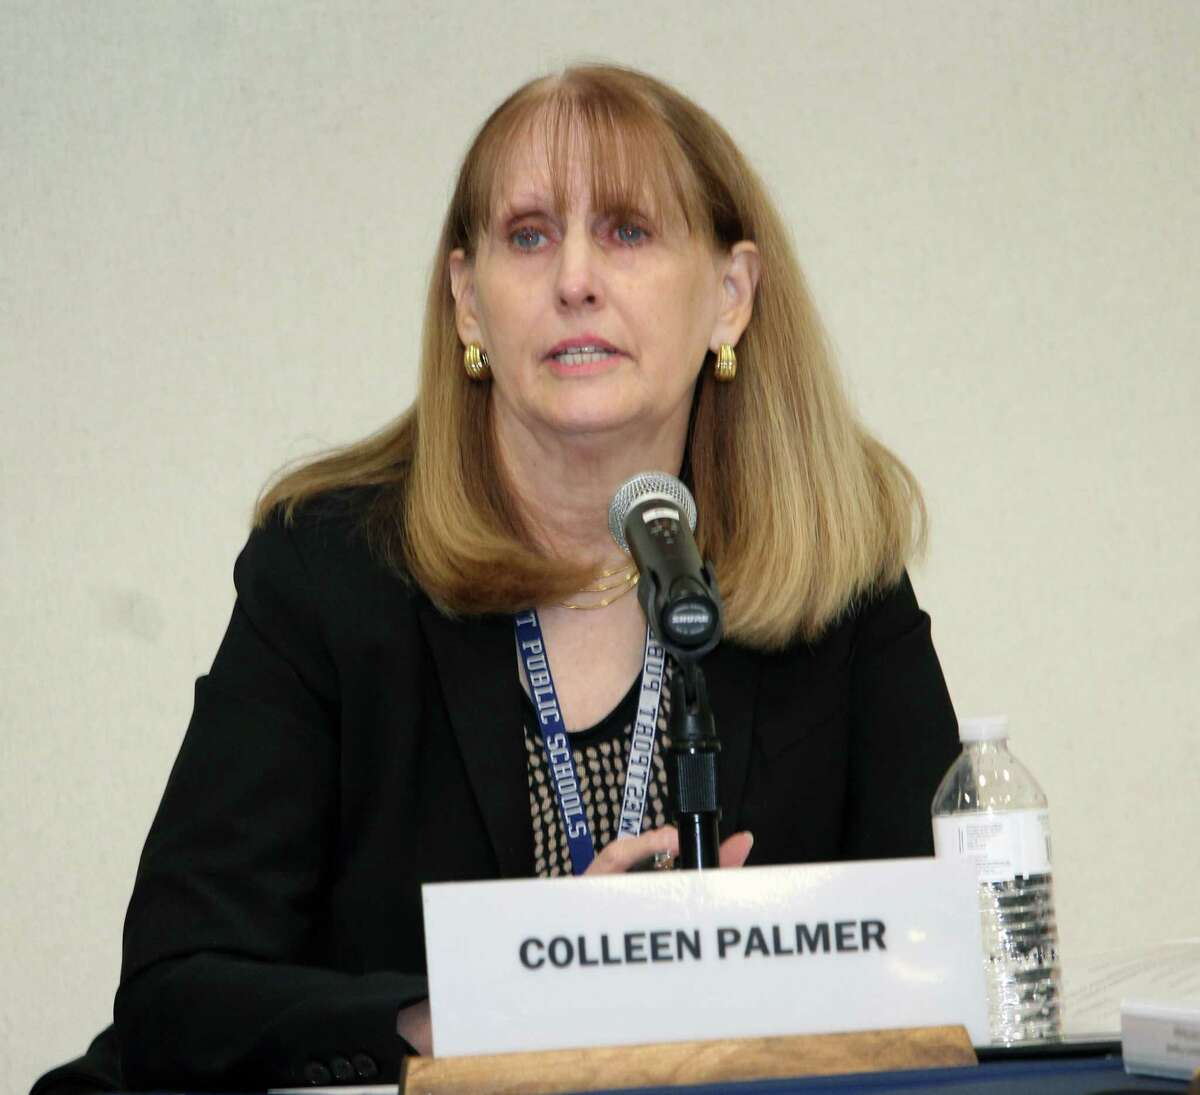 Superintendent of Schools Colleen Palmer at the Jan. 29, 2018, meeting of the Board of Education in Westport, Conn.